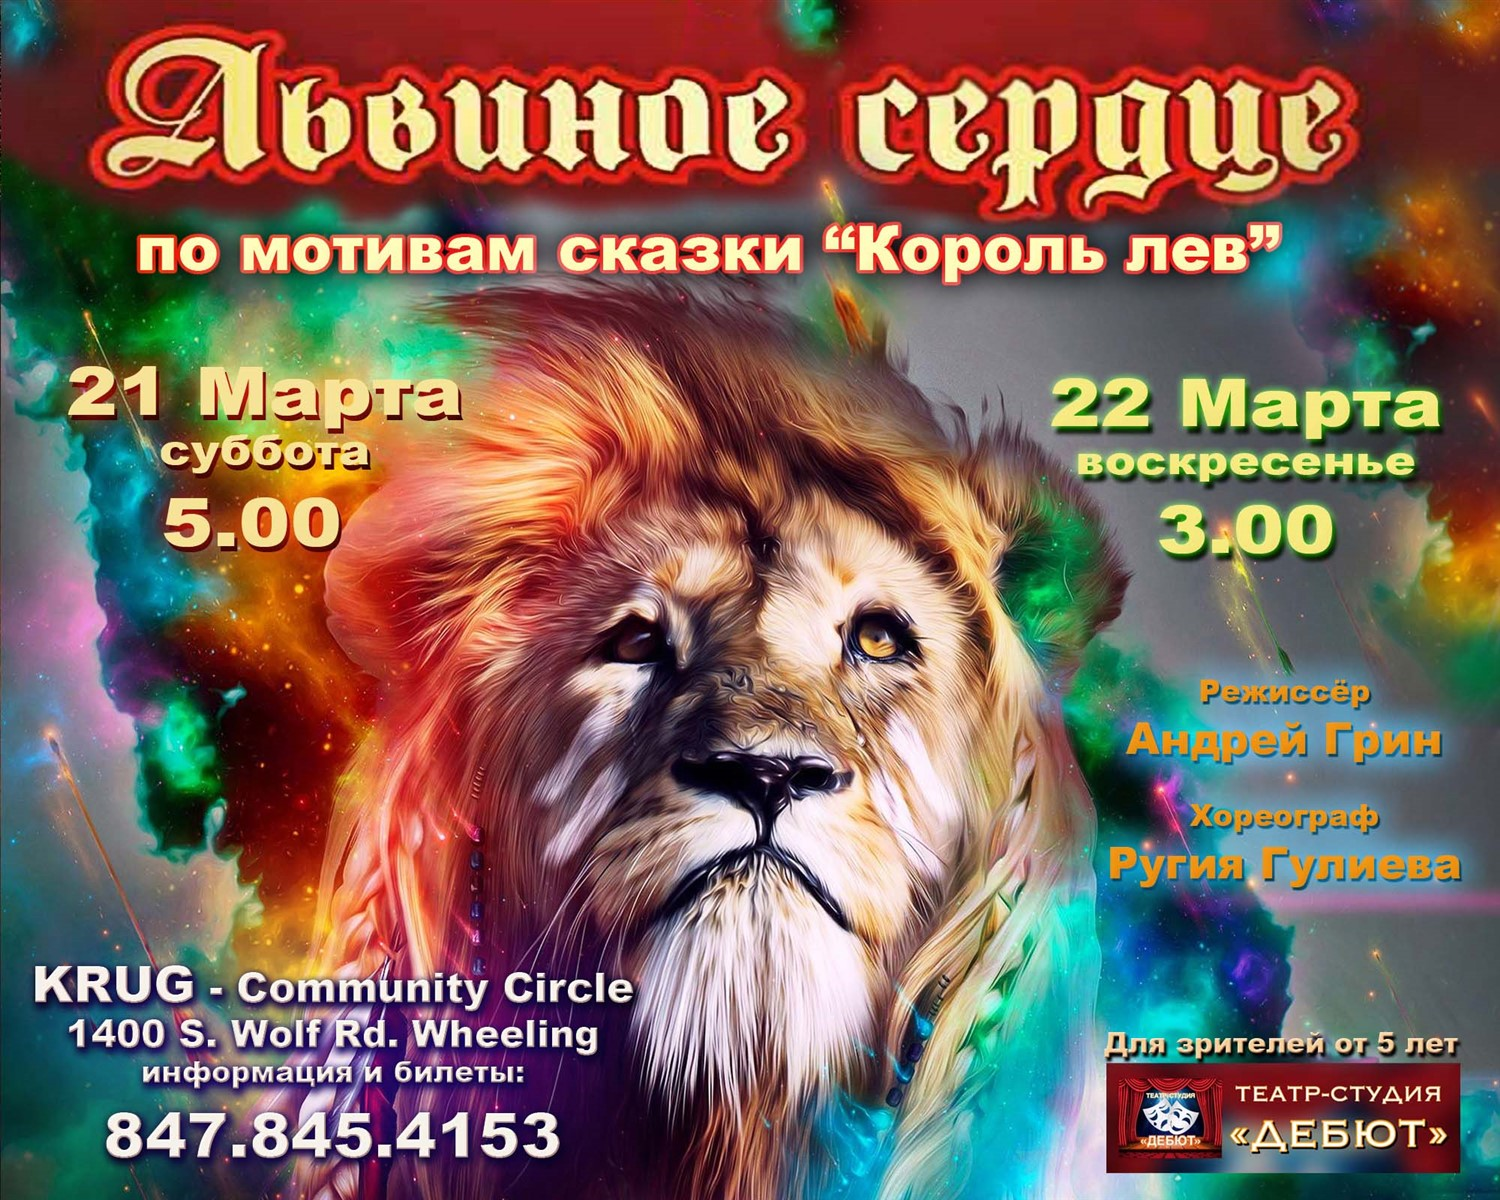 Львиное Сердце  on Mar 22, 15:00@Krug Community Center - Buy tickets and Get information on www.debutstudiocorp.art